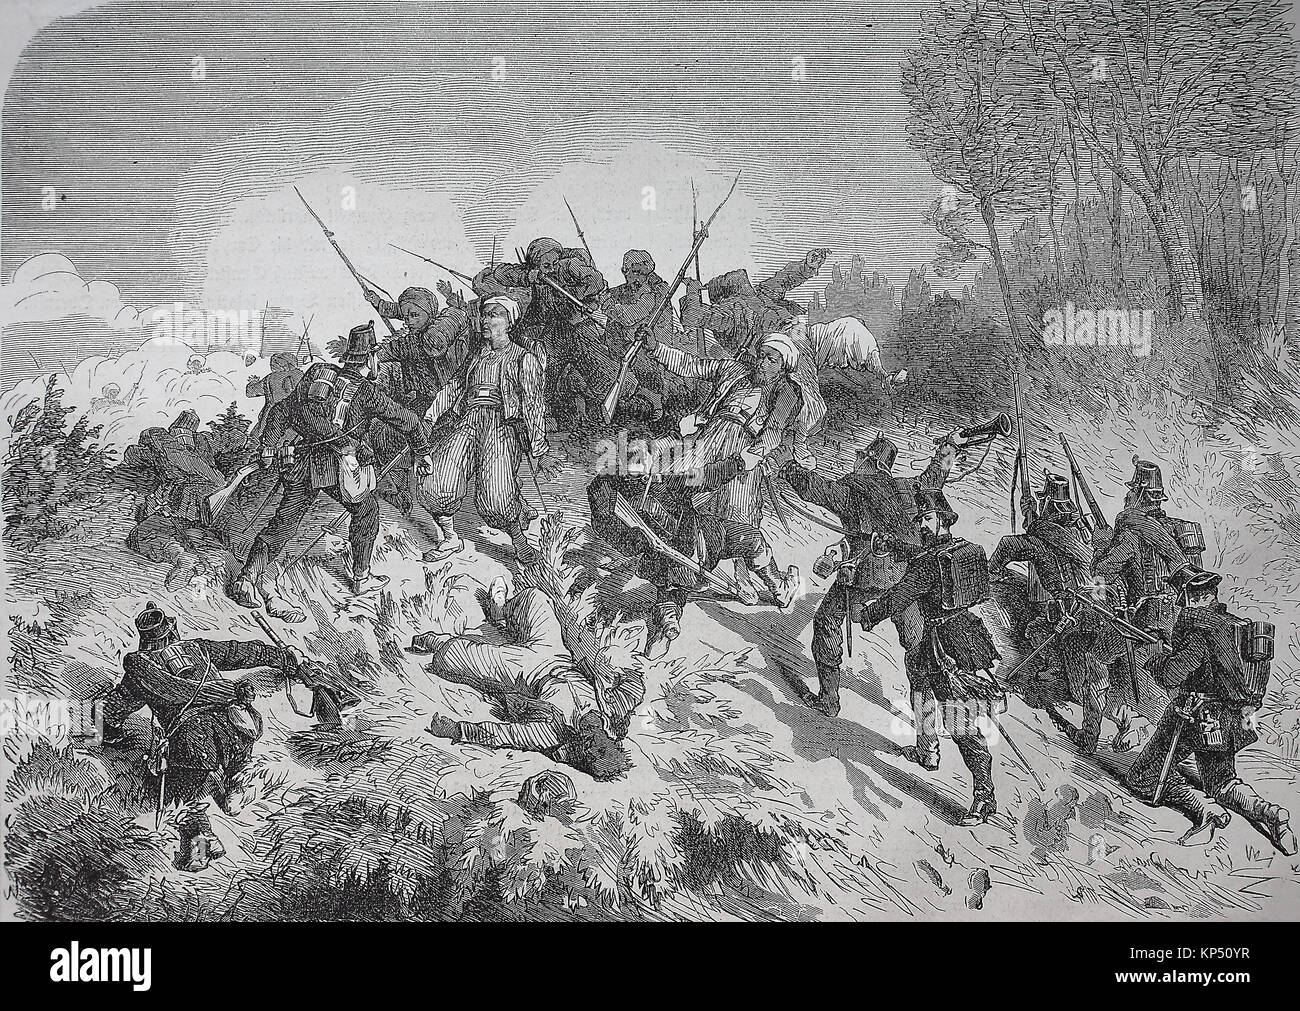 Capture of Turcos by North German riflemen, fighter near Woerth, France 1870/1871, time of the Franco-Prussian War - Stock Image